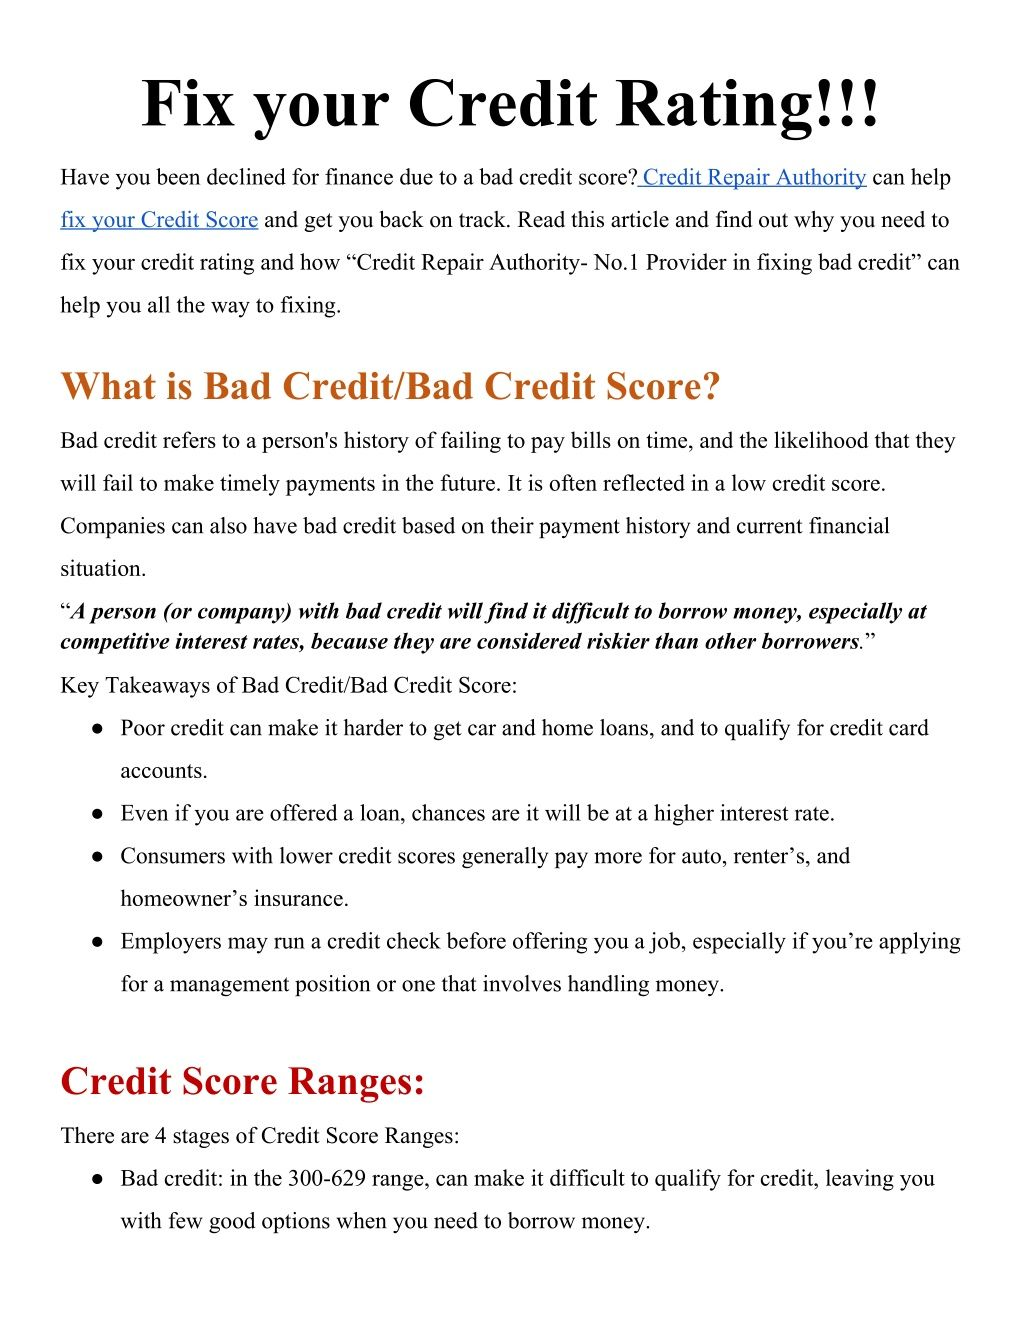 640742b654bceb9ecf27d7a15d9fcaf7 - How To Get Rid Of A Judgement On Your Credit